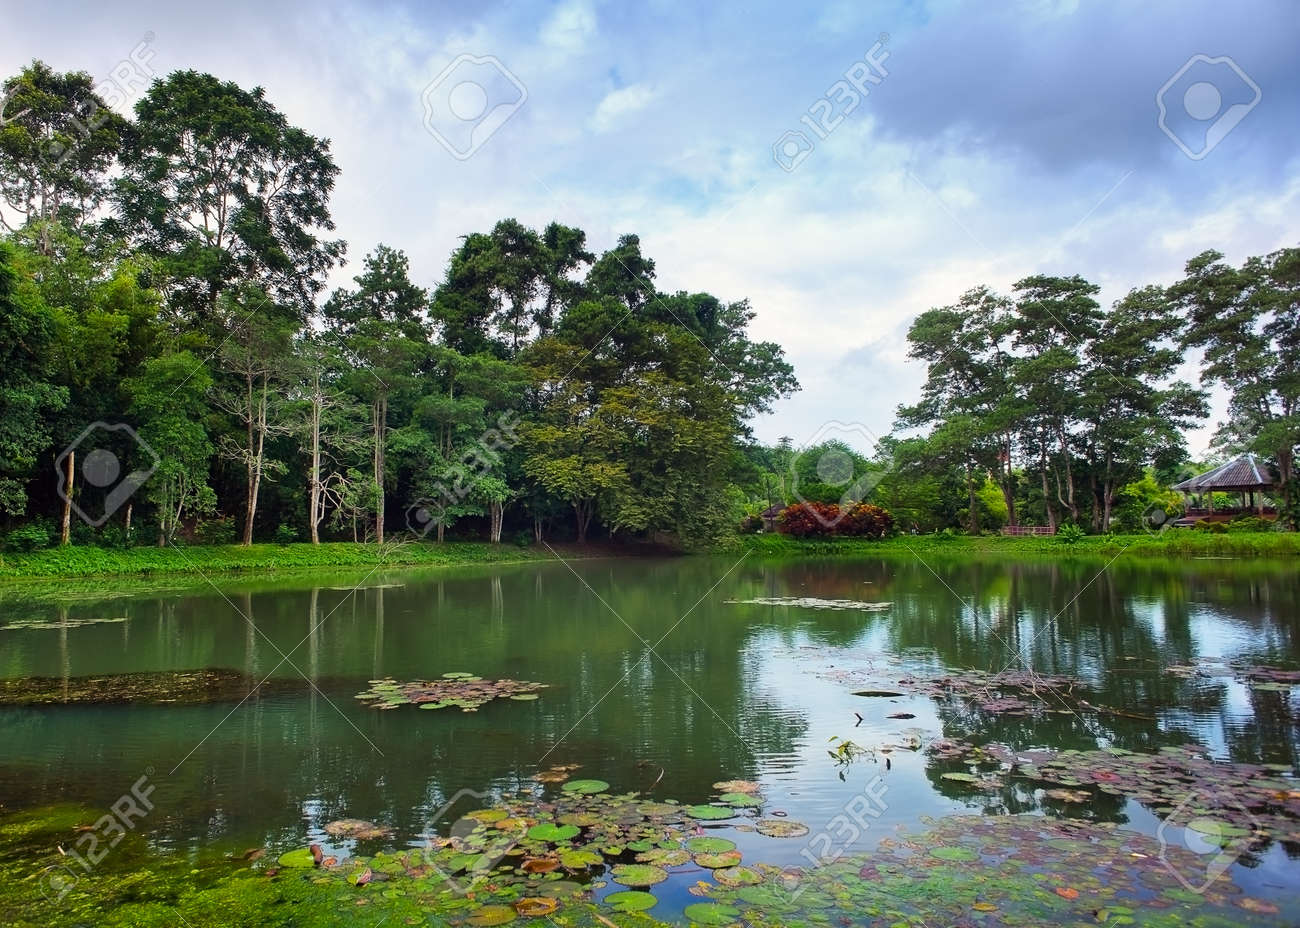 Background image location - Natural Background Of Pond And Trees Beautiful Outdoors Location Stock Photo 15385892